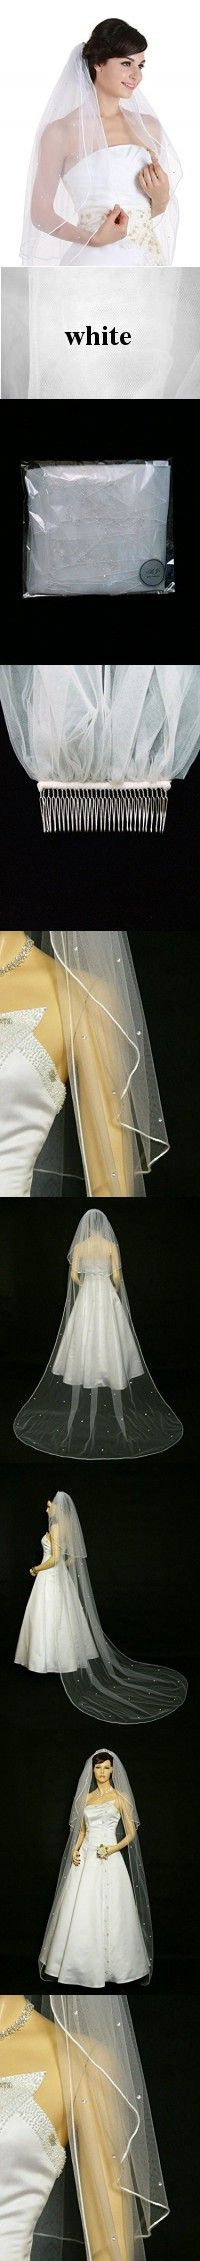 "2T 2 Tier Rhinestones Crystal Sattin Rattail Edge Bridal Wedding Veil - White Cathedral Length 108"" V229"